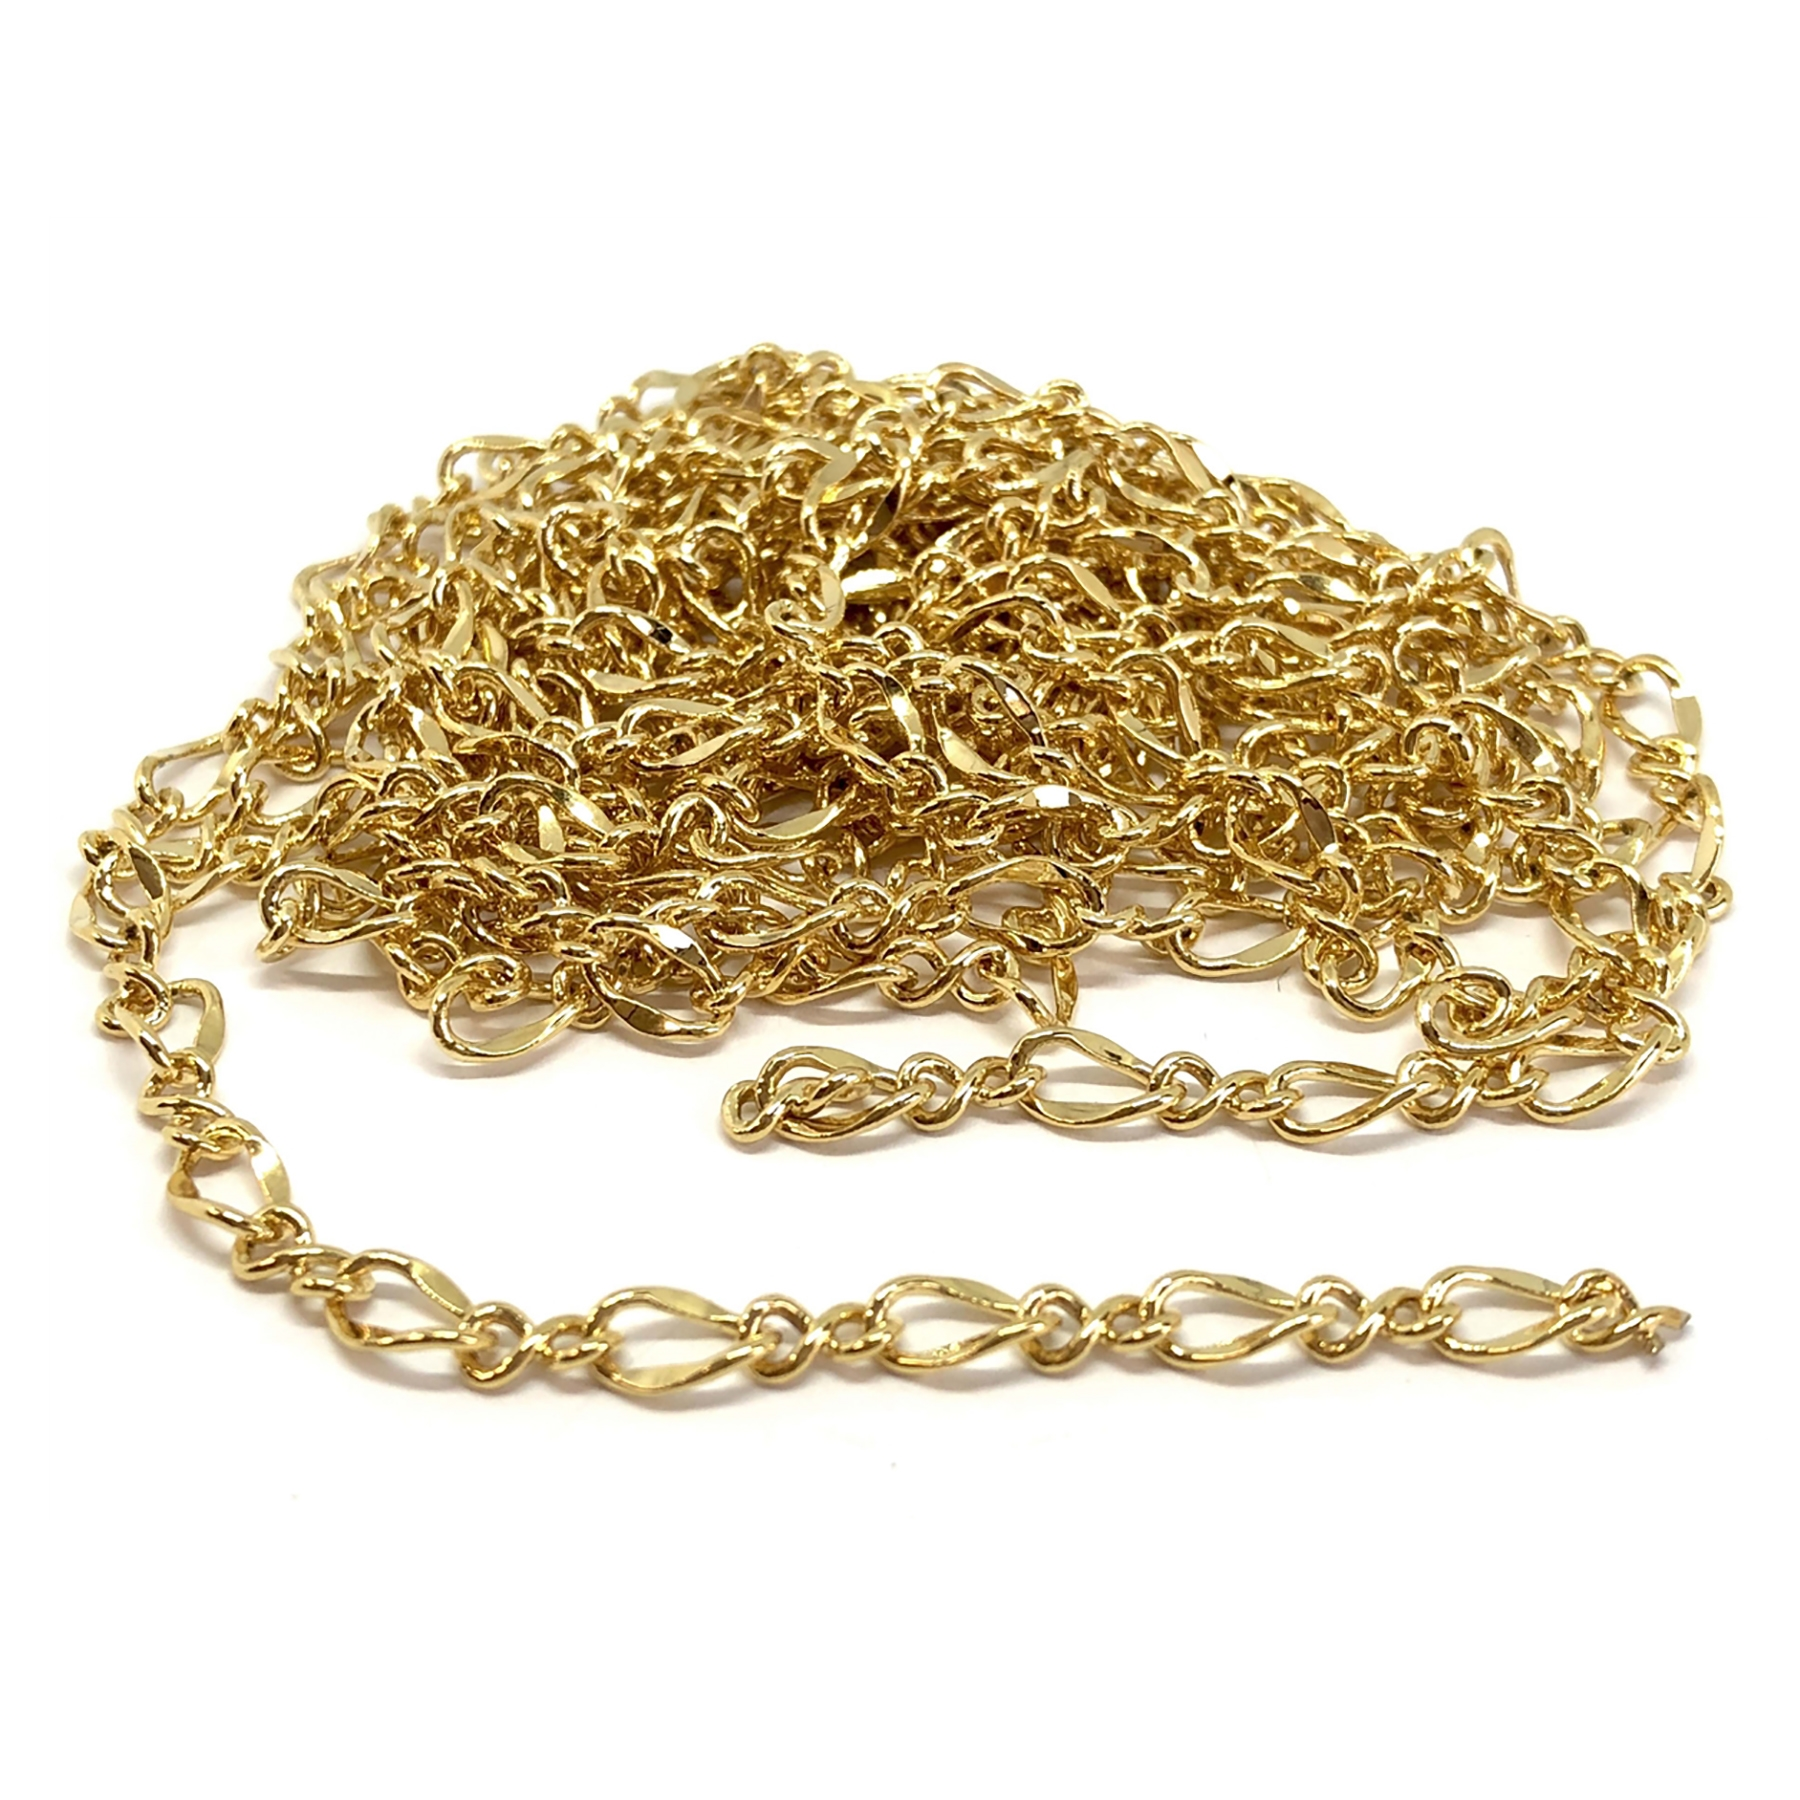 twisted figaro gold plate chain, oval twisted chain, goldplate, jewelry chain, goldplate chain, figaro chain, gold chain, 4x7mm, oval twisted, jewelry making, jewelry supplies, vintage supplies, jewelry findings, brass chain, oval chain, 01185